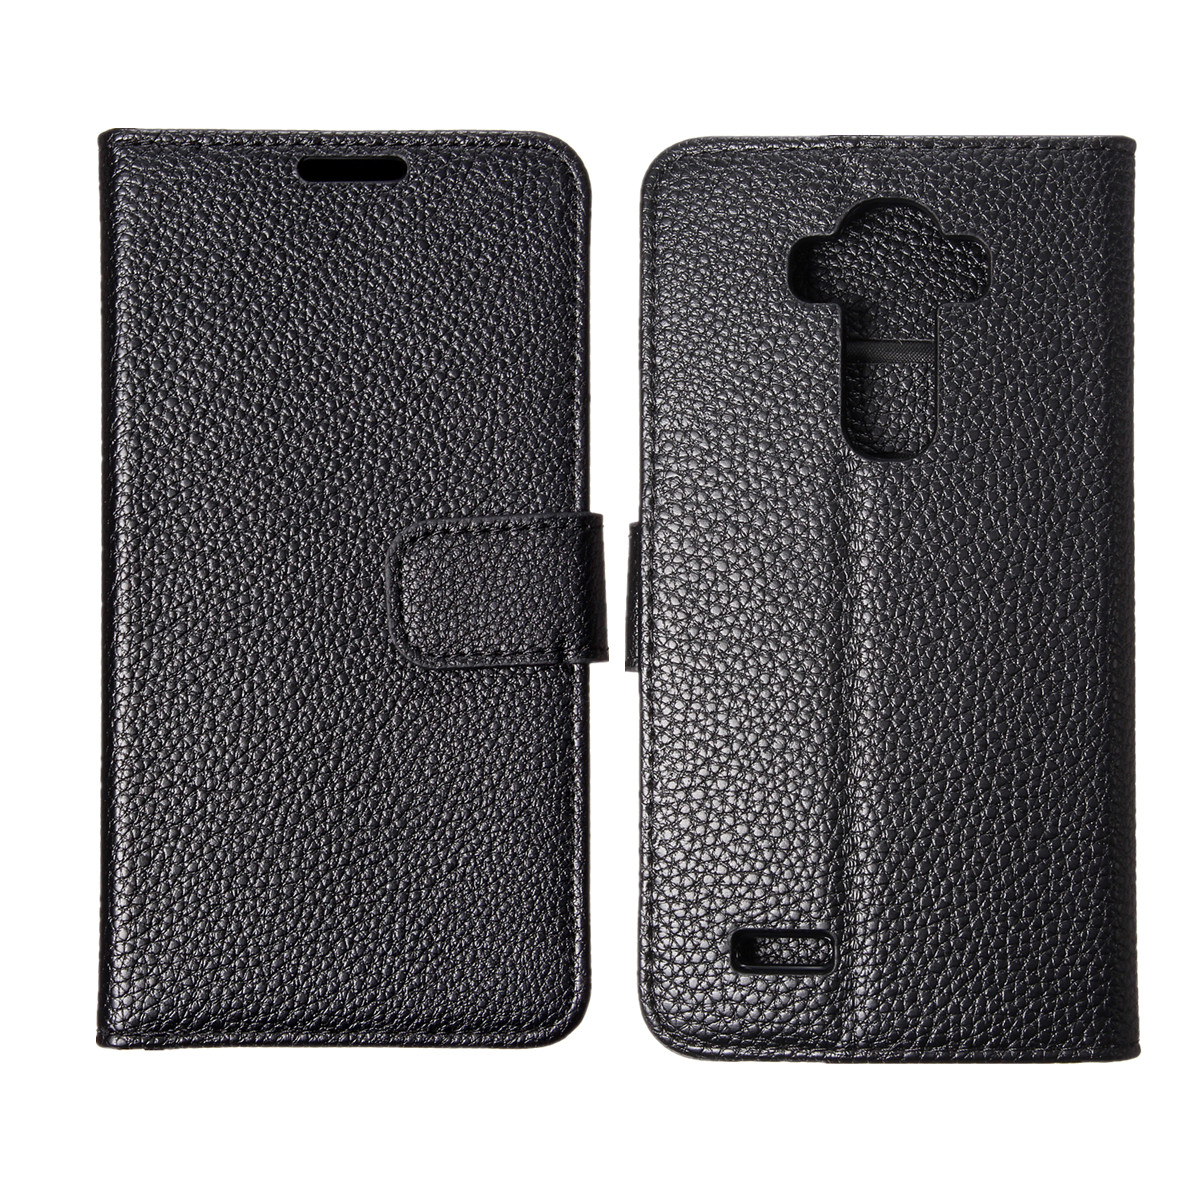 Magnetic Slim Leather Flip Wallet Credict Card Stand Case Cover Skin For LG G4